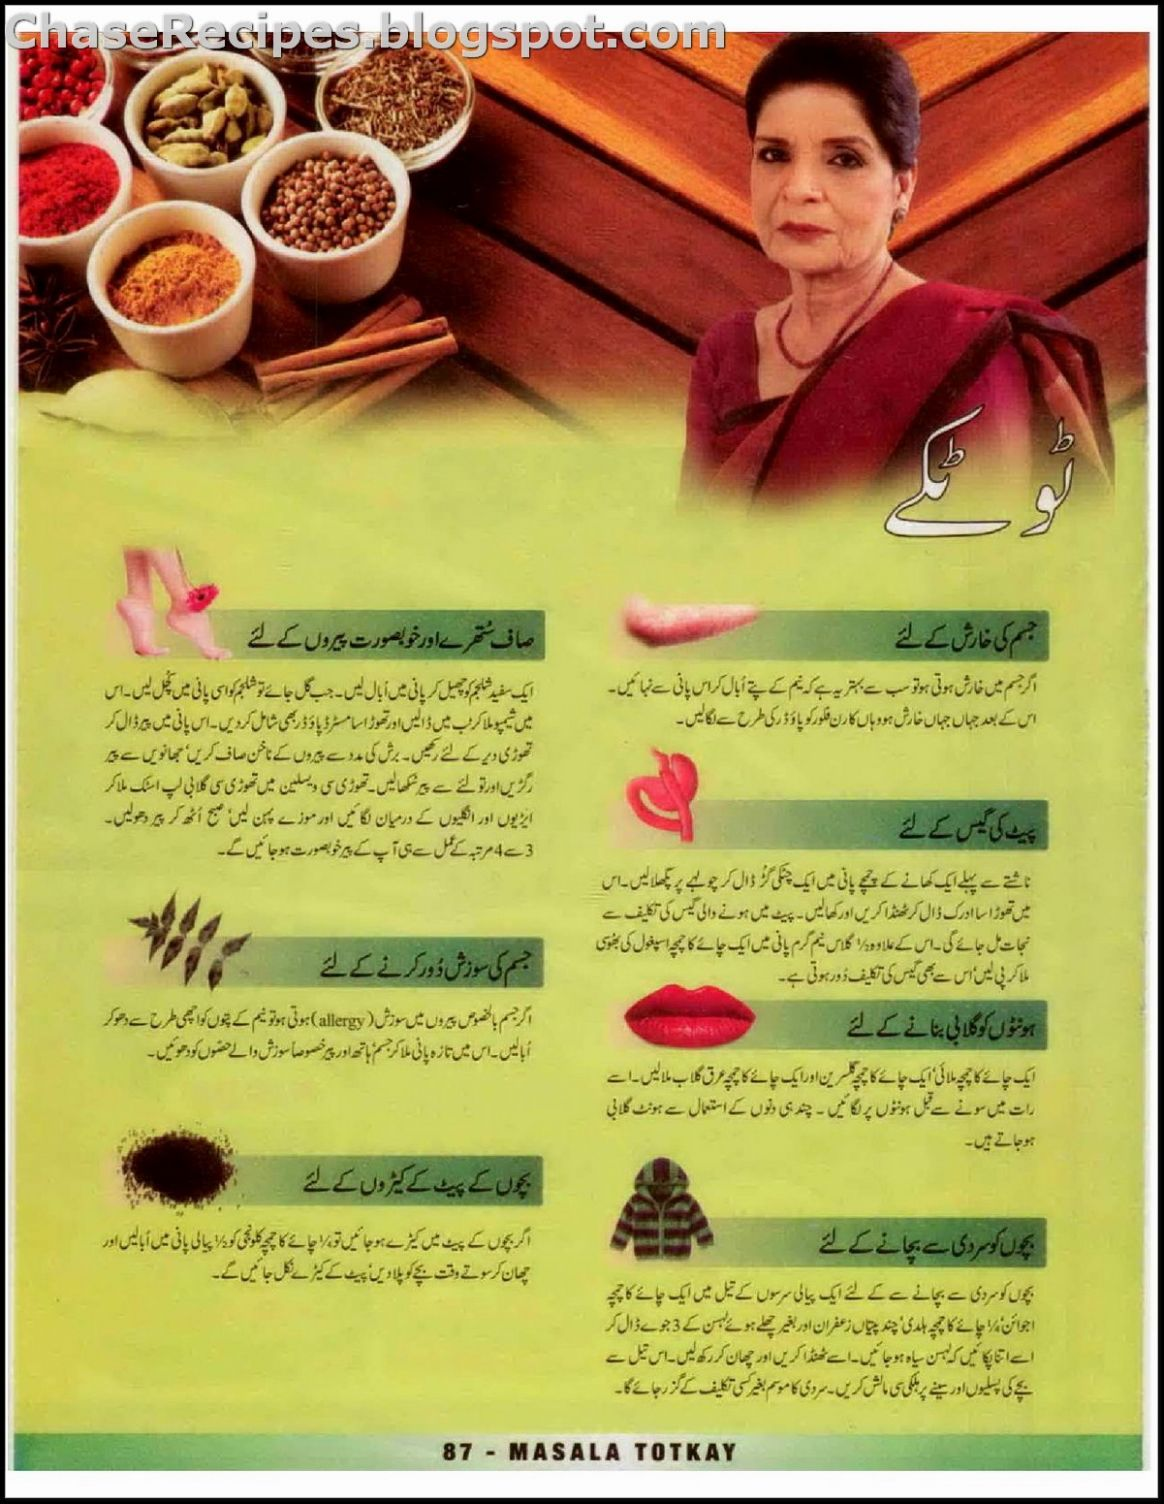 Zubaida Tariq Handi, Programs, Recipes, Tips, Totkay - Chase Recipes